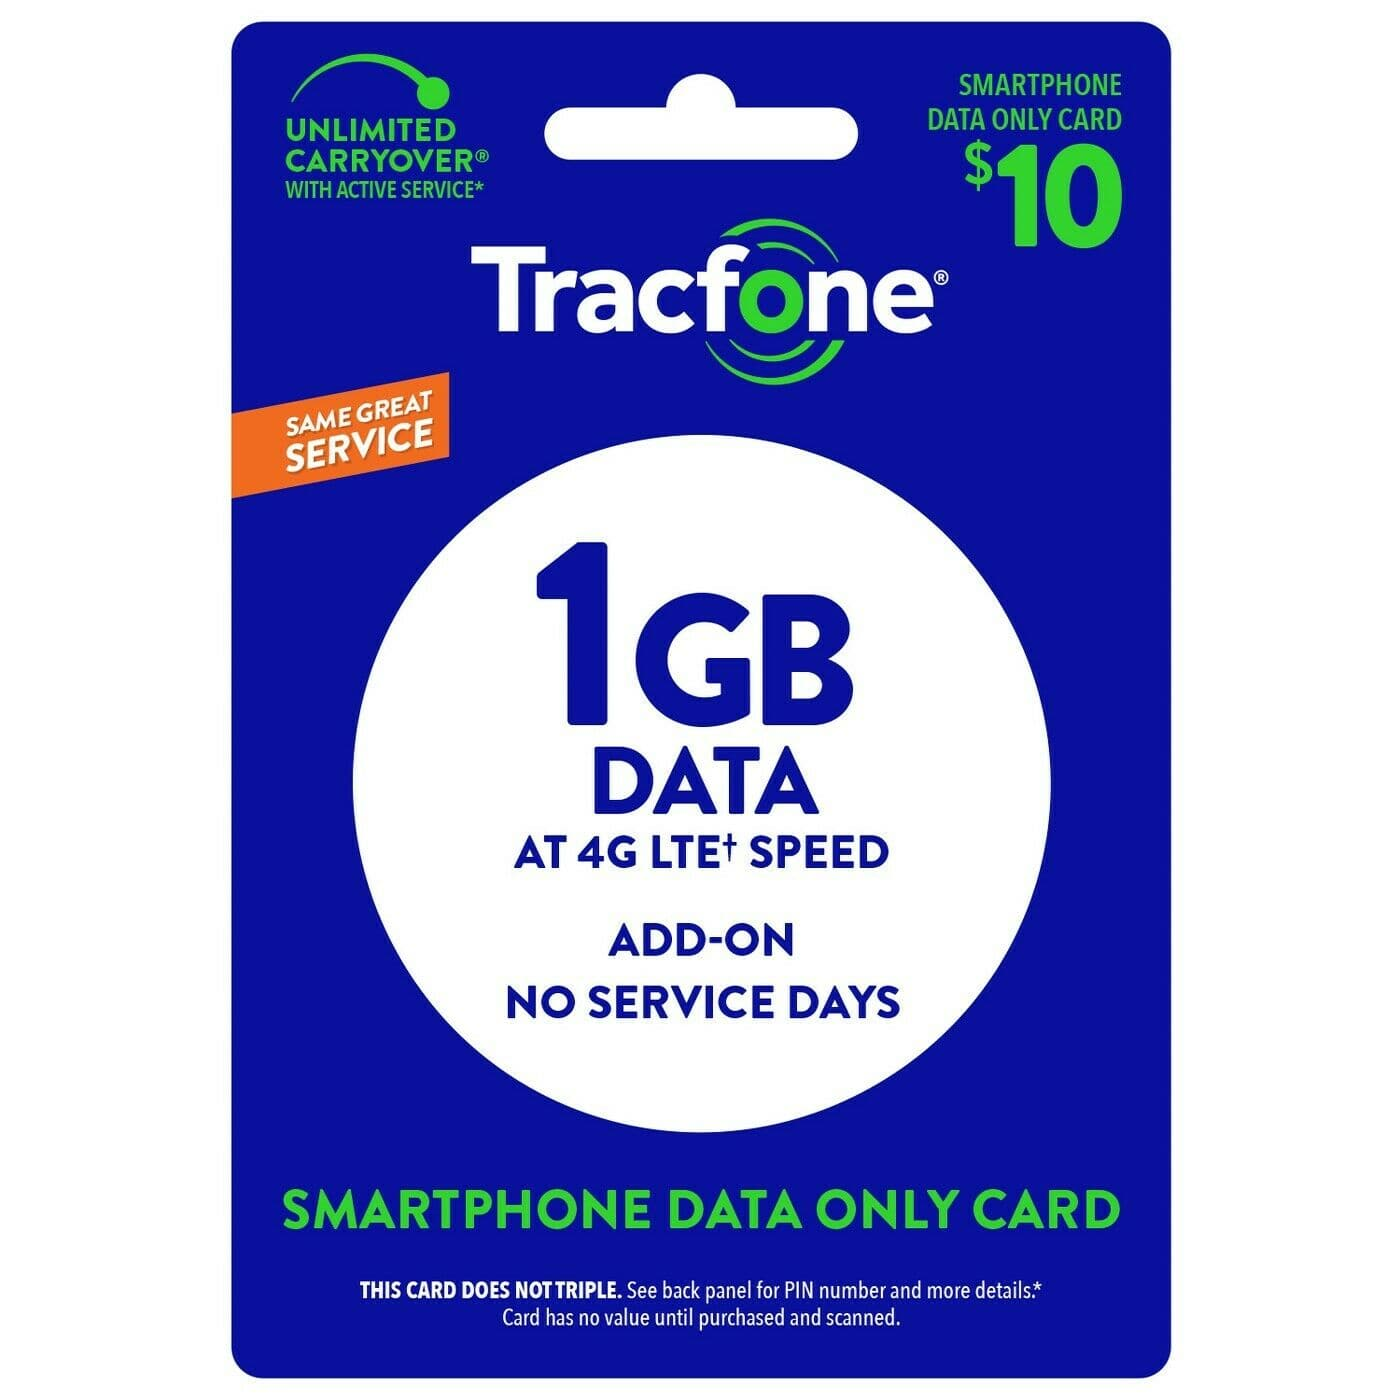 1GB Tracfone data plus 500MB free with promo code - $10 (or